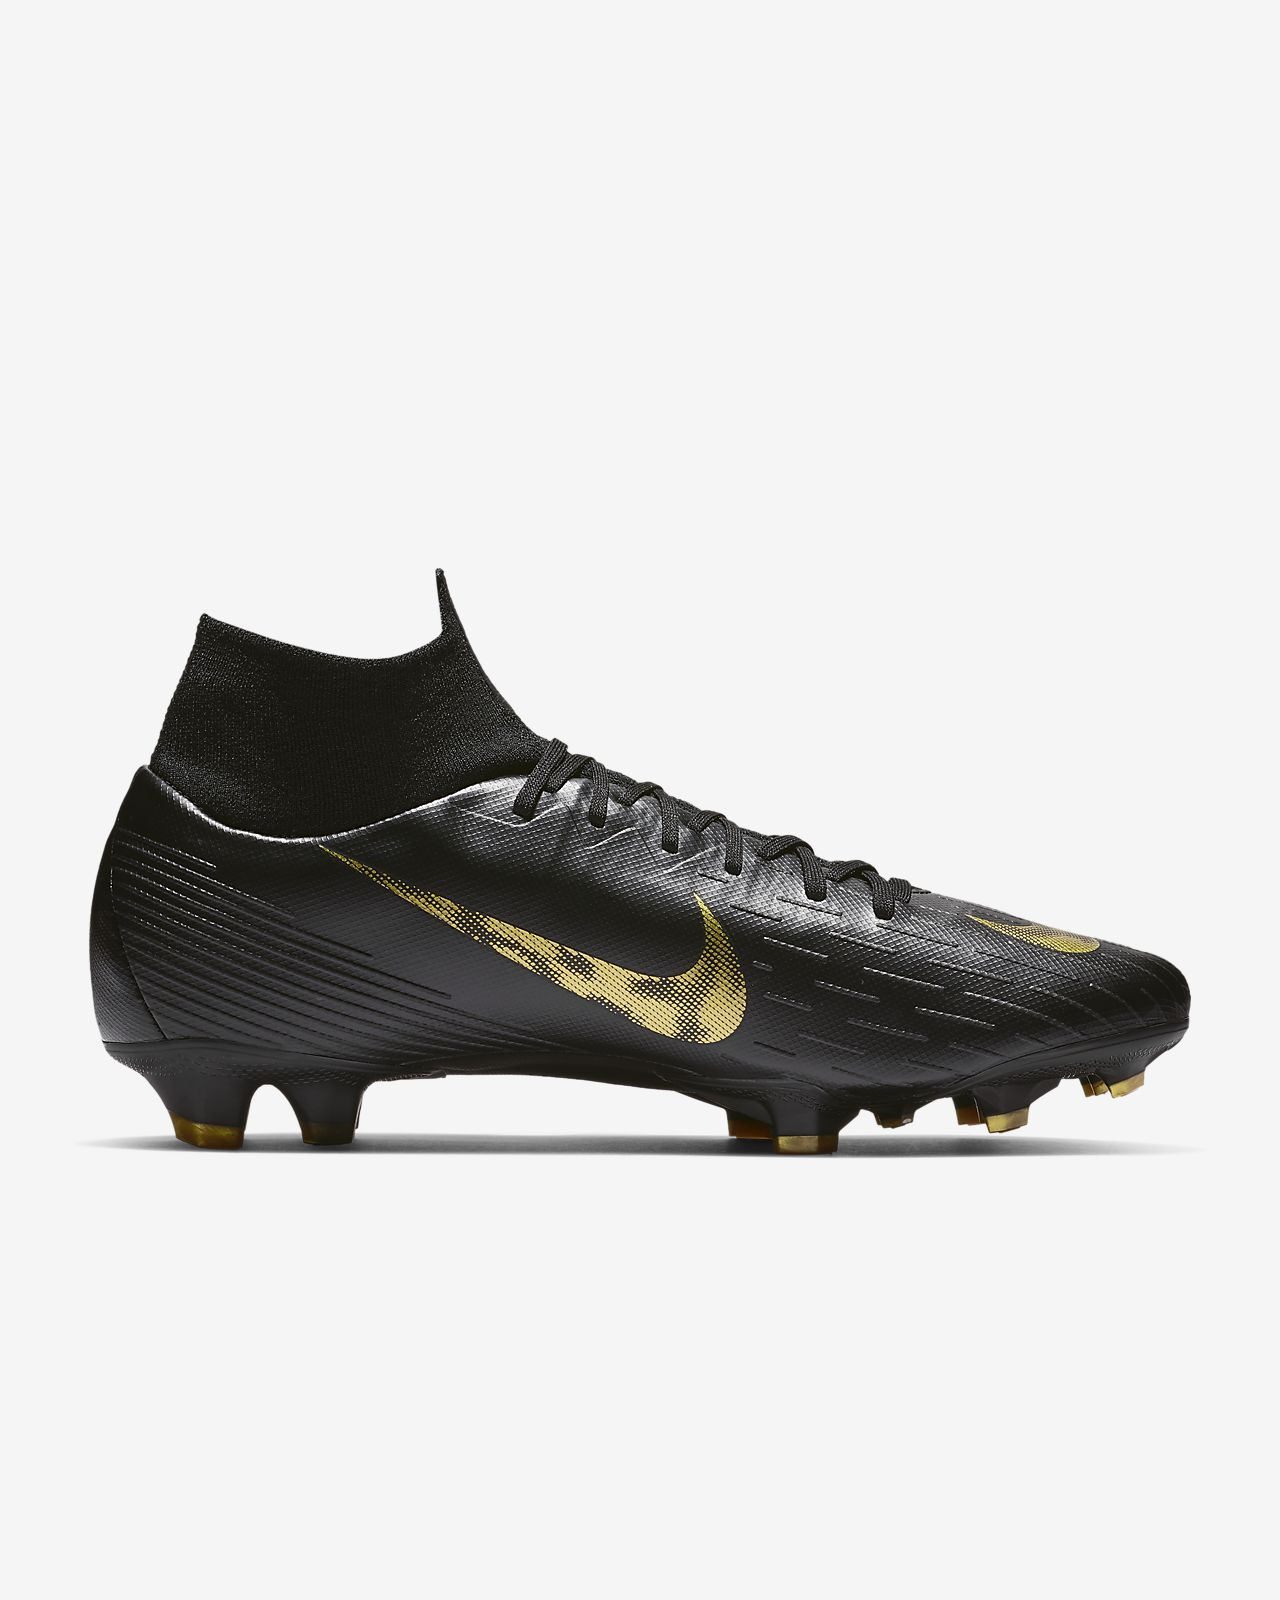 new products 53fe3 90b14 ... Nike Superfly 6 Pro FG Firm-Ground Football Boot